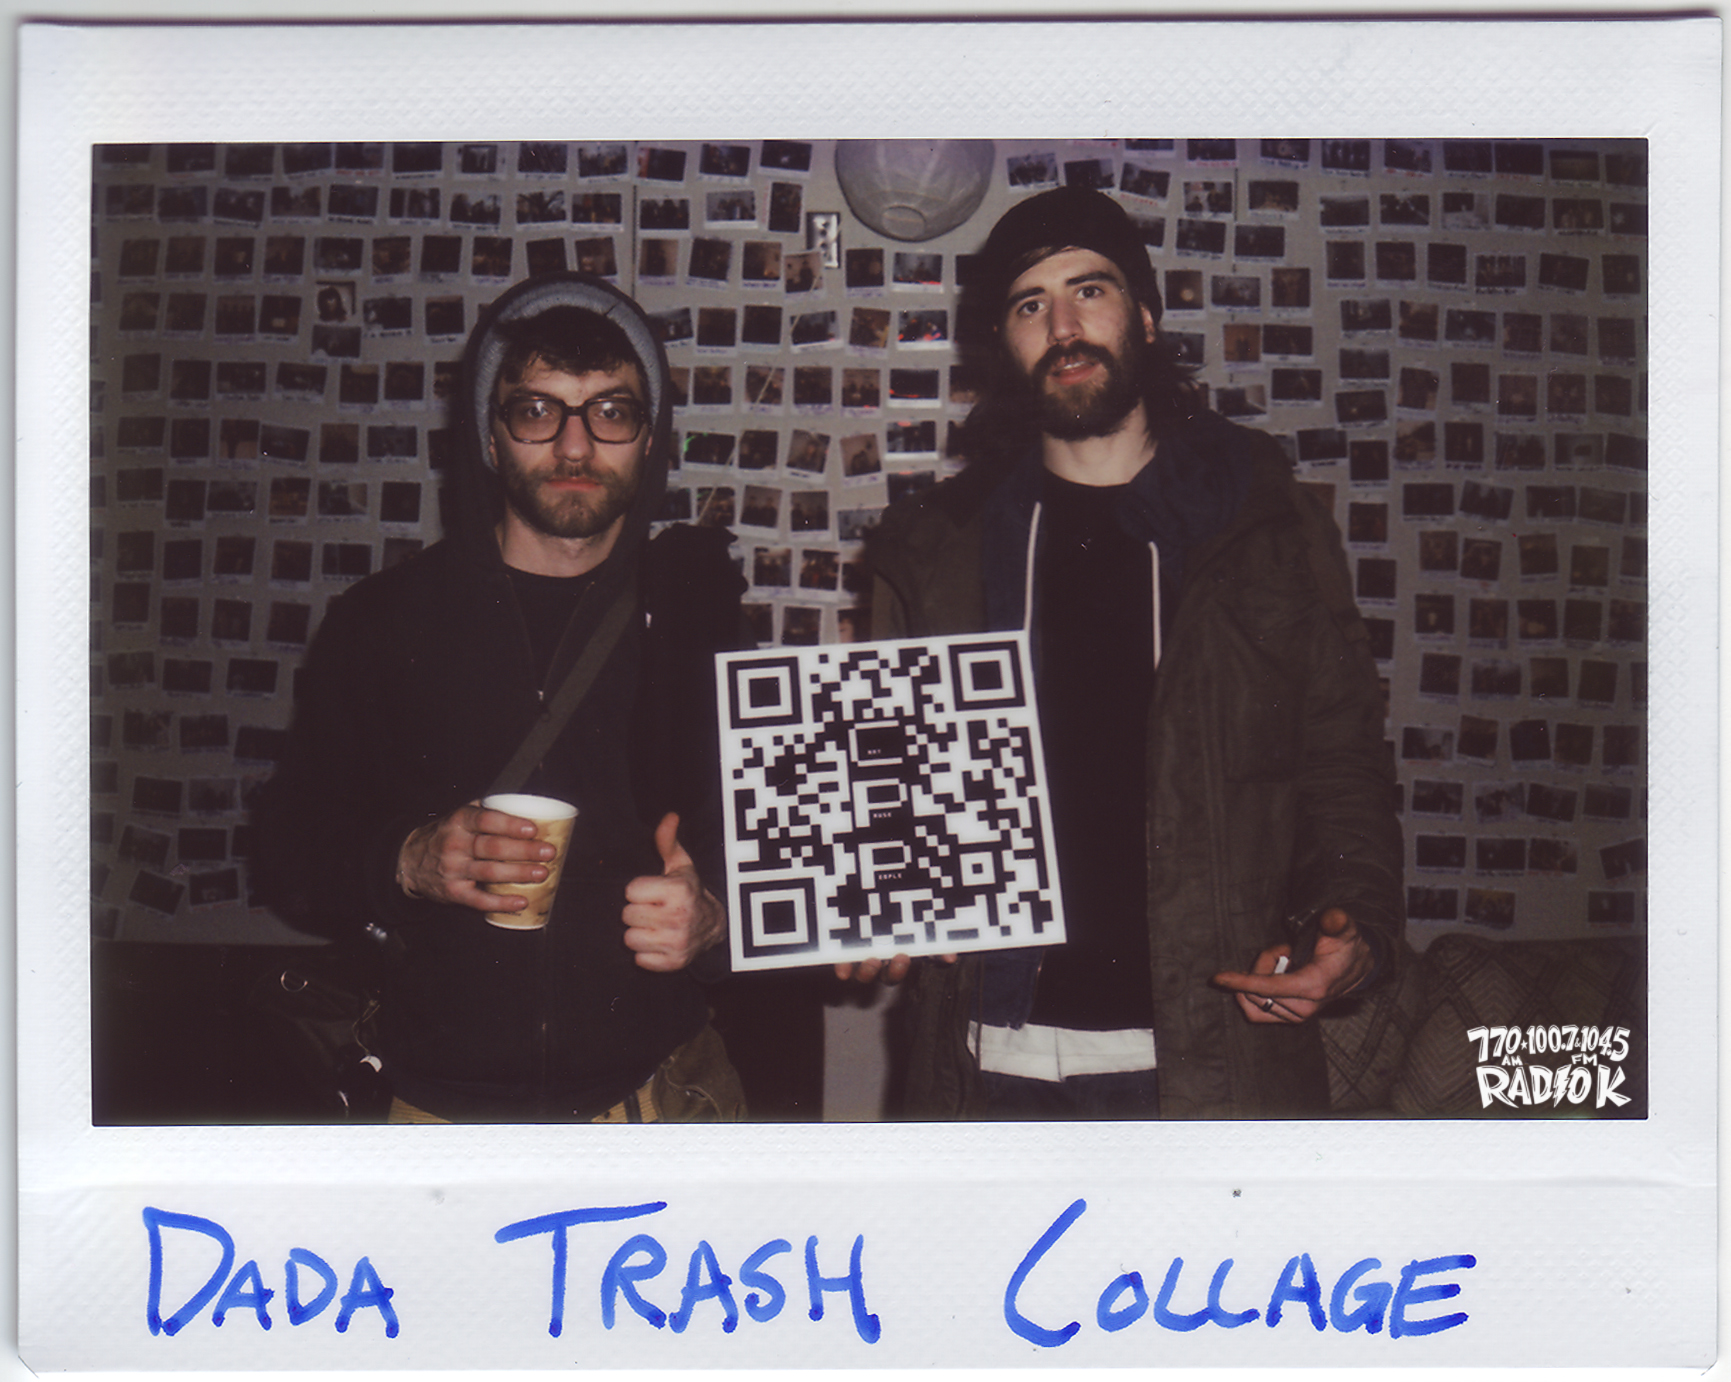 Dada Trash Collage